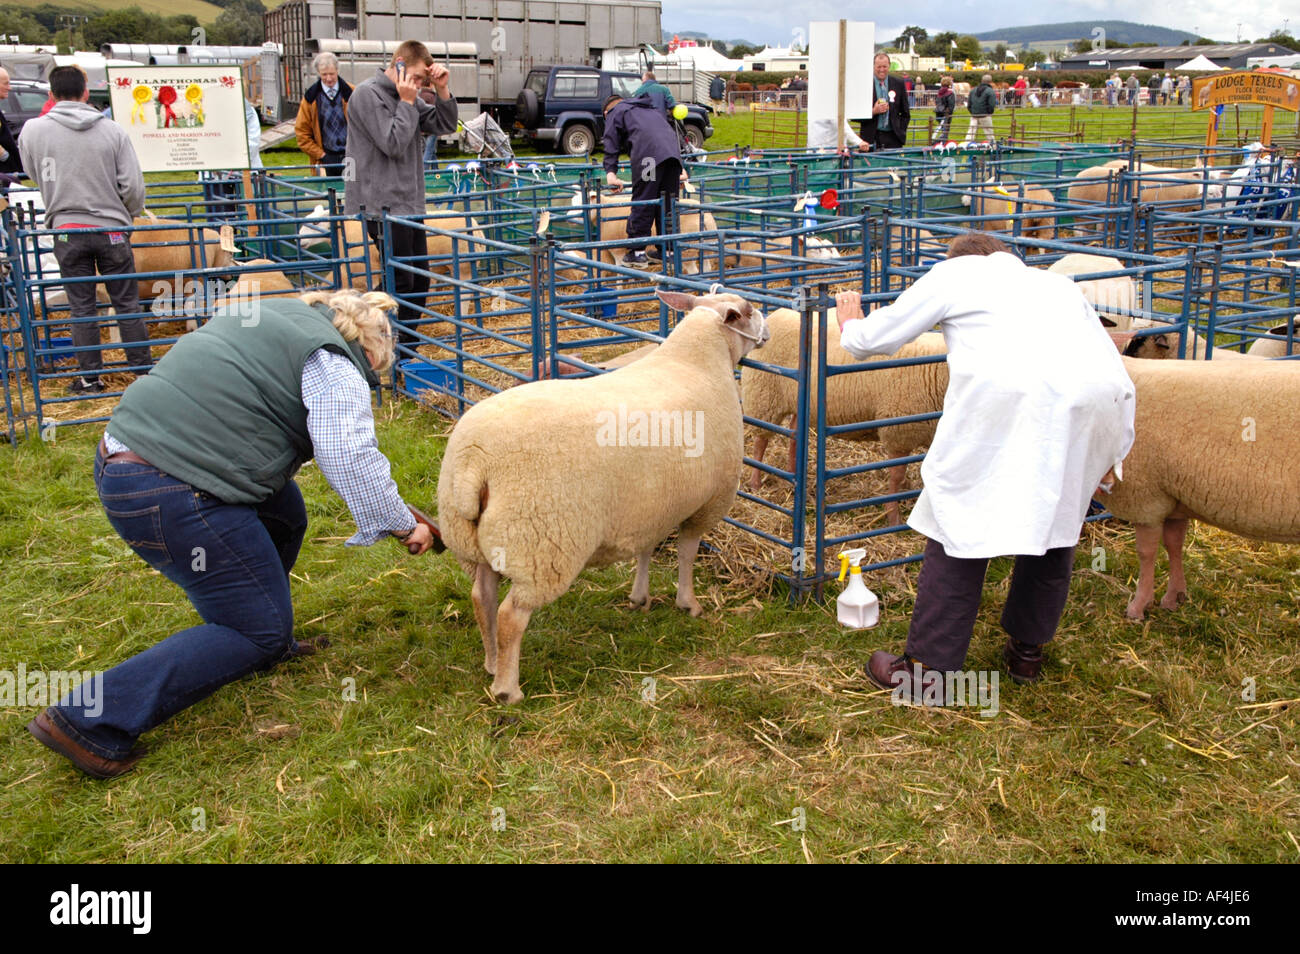 Preparing sheep for judging at Brecknockshire Agricultural Society annual show in its 250th year in the market town of Brecon UK - Stock Image